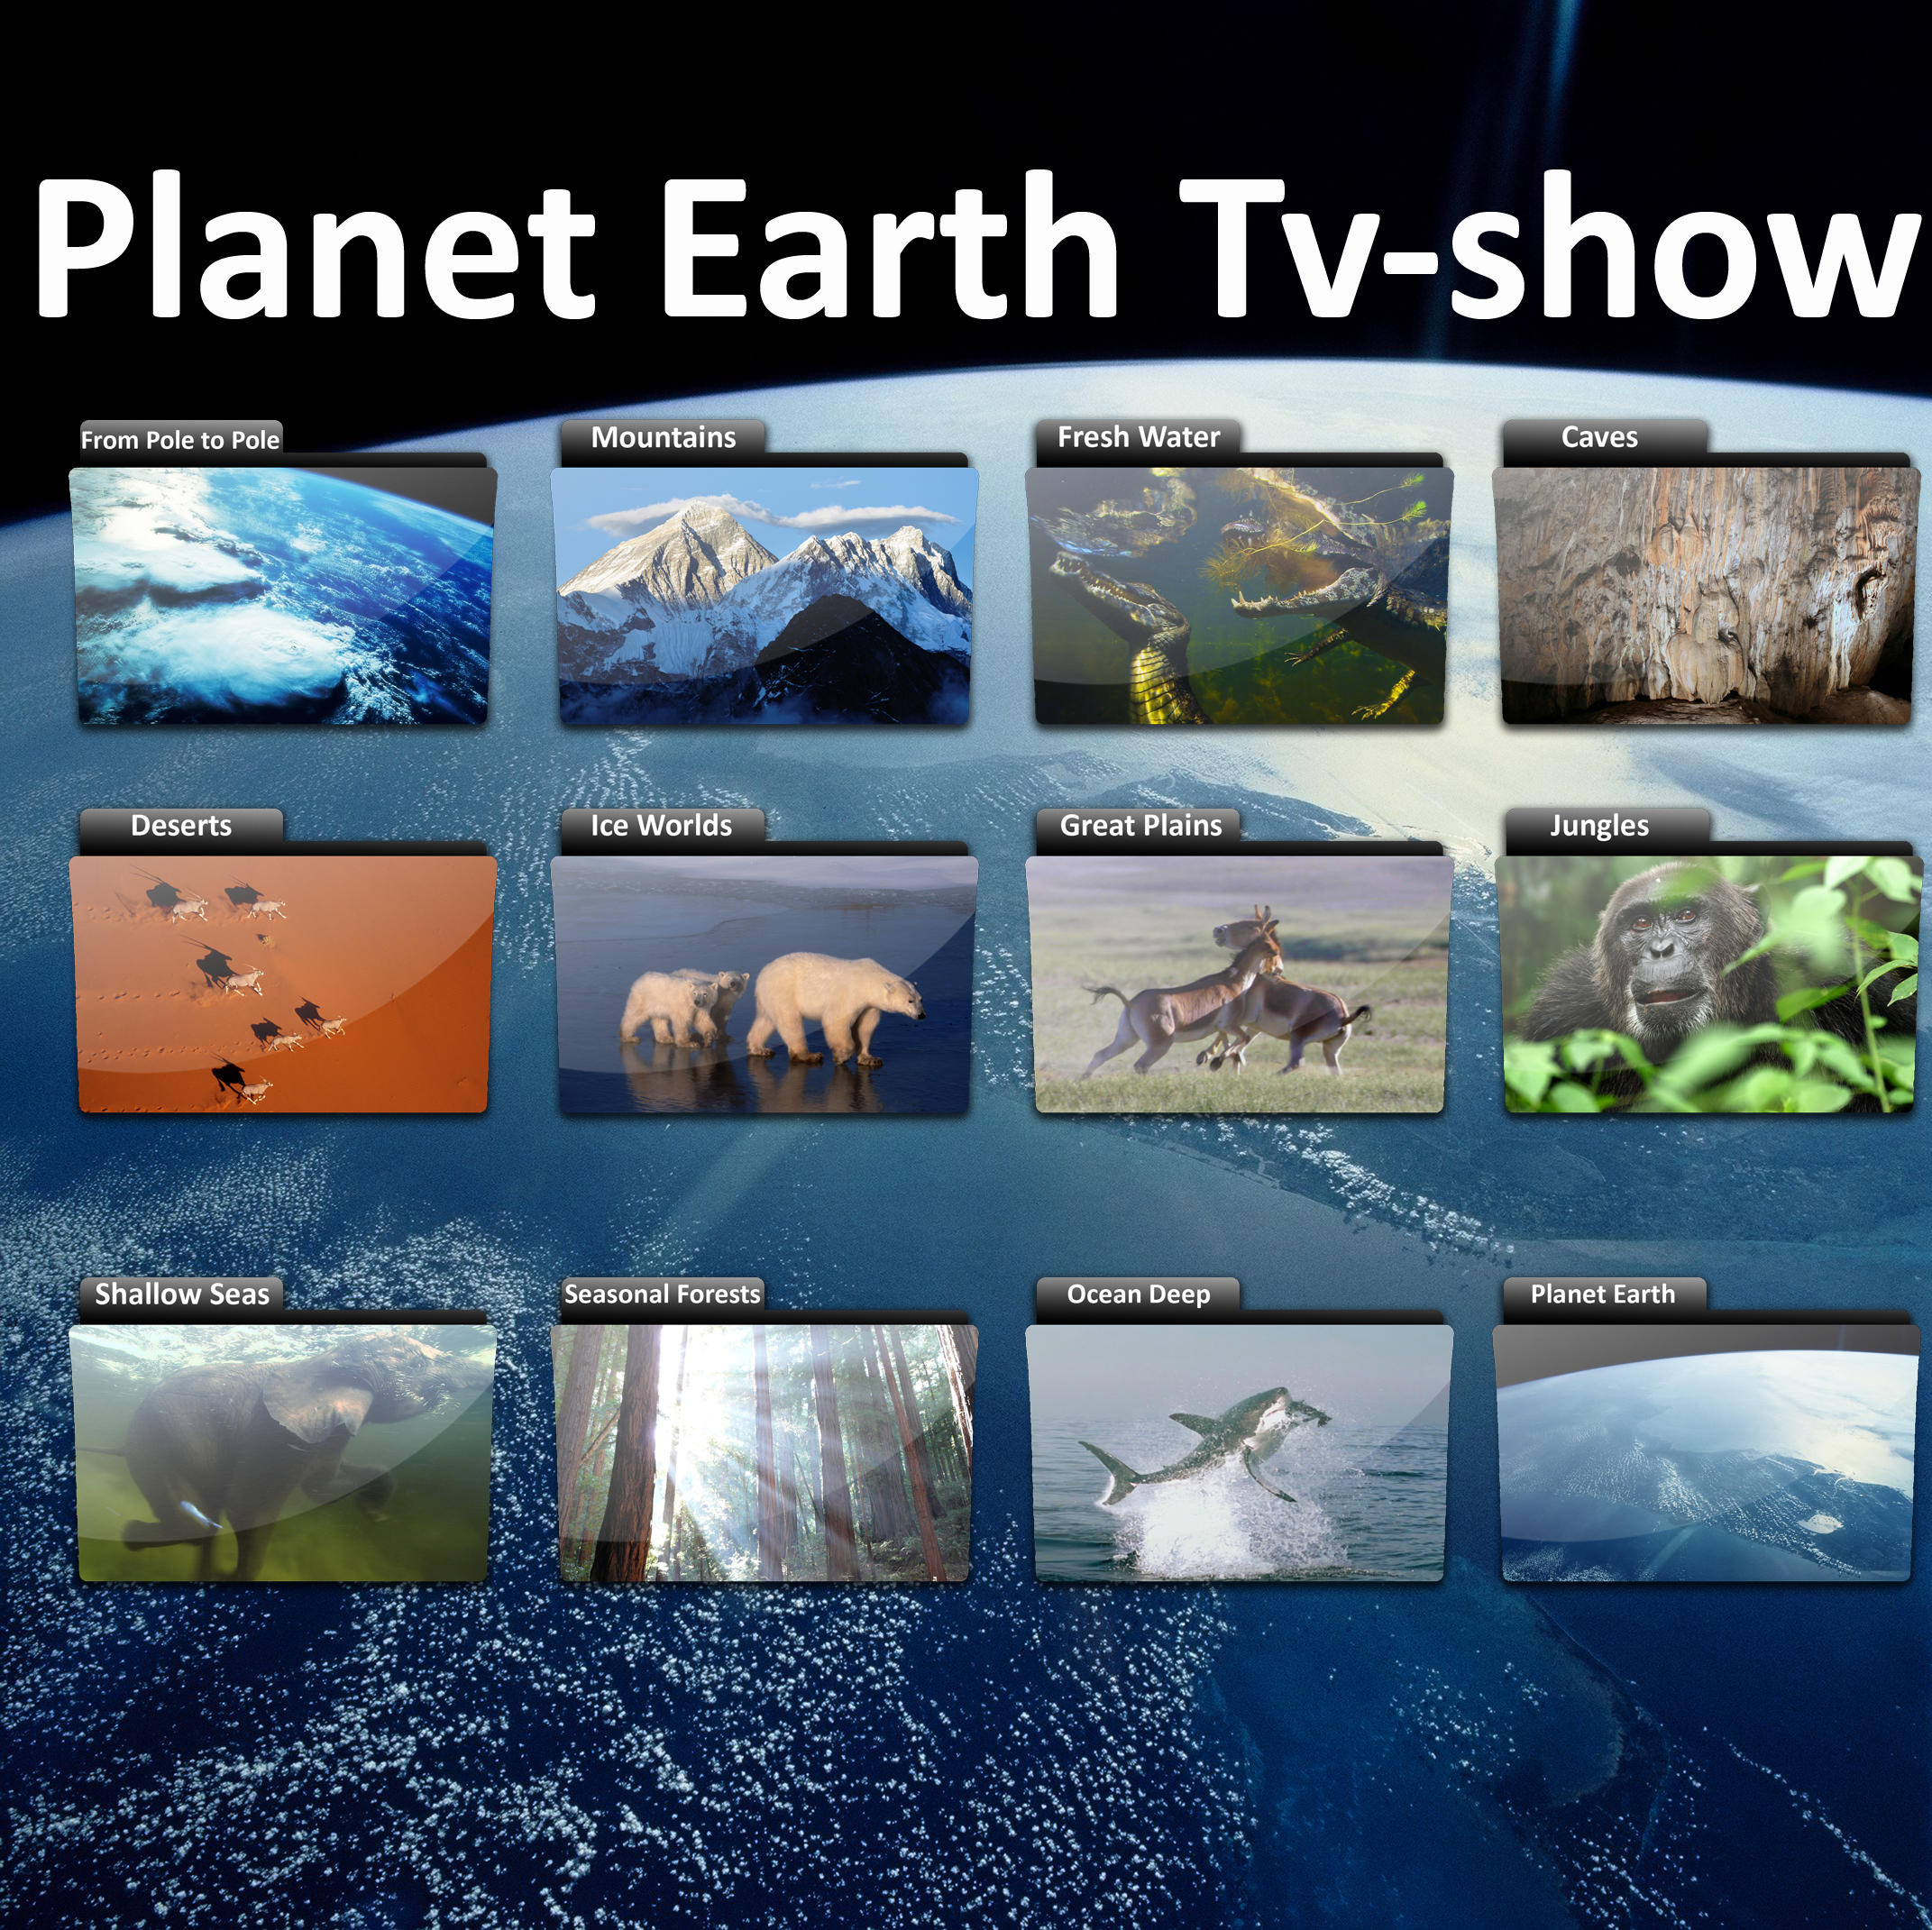 Planet Earth TV-Show Icons by Bastan on DeviantArt